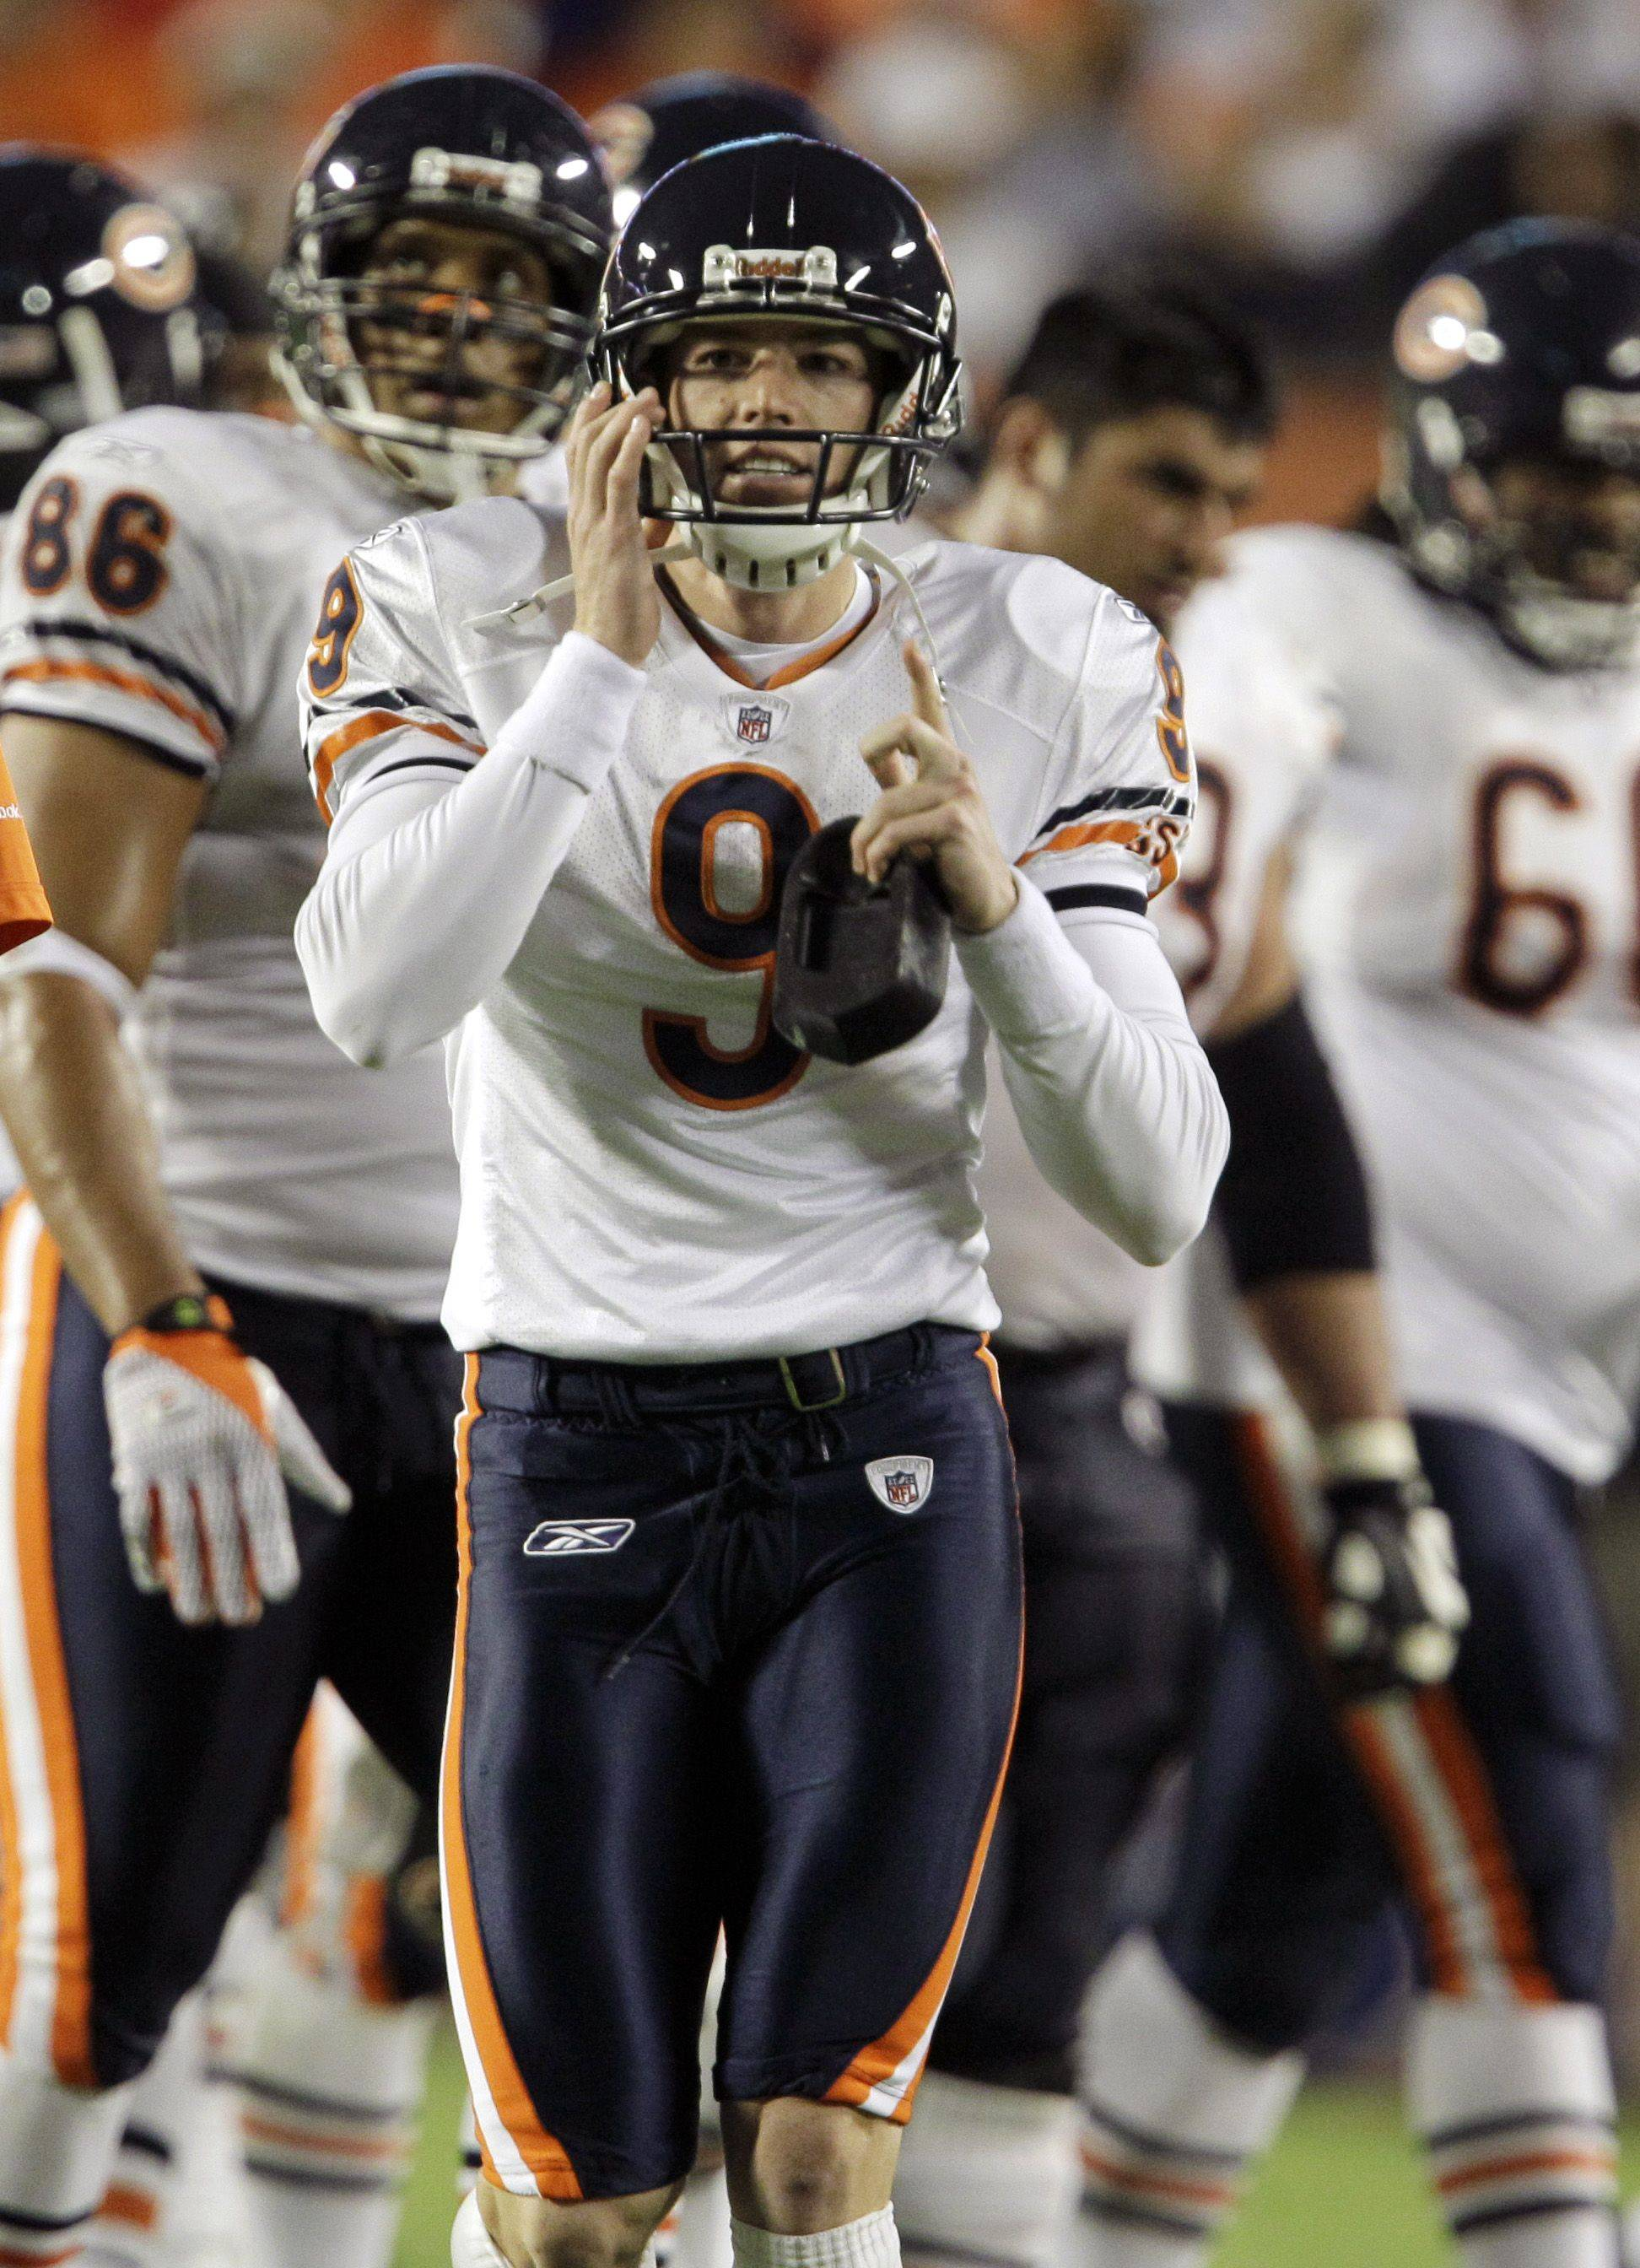 Chicago Bears placekicker Robbie Gould celebrates after scoring a field goal during the third quarter .